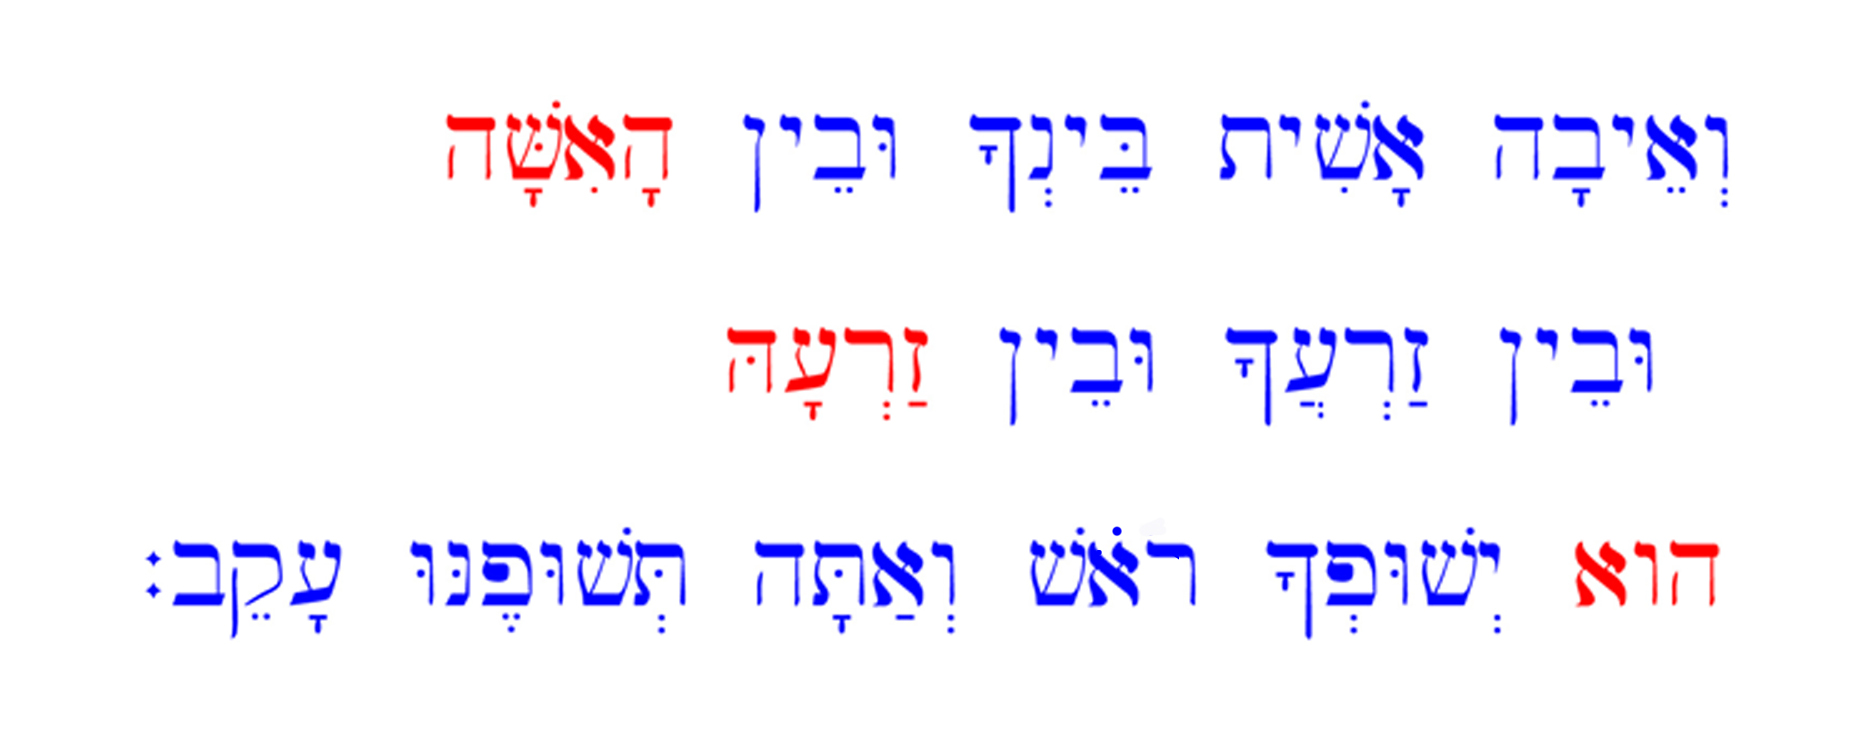 Genesis 3:15 in Biblical Hebrew.